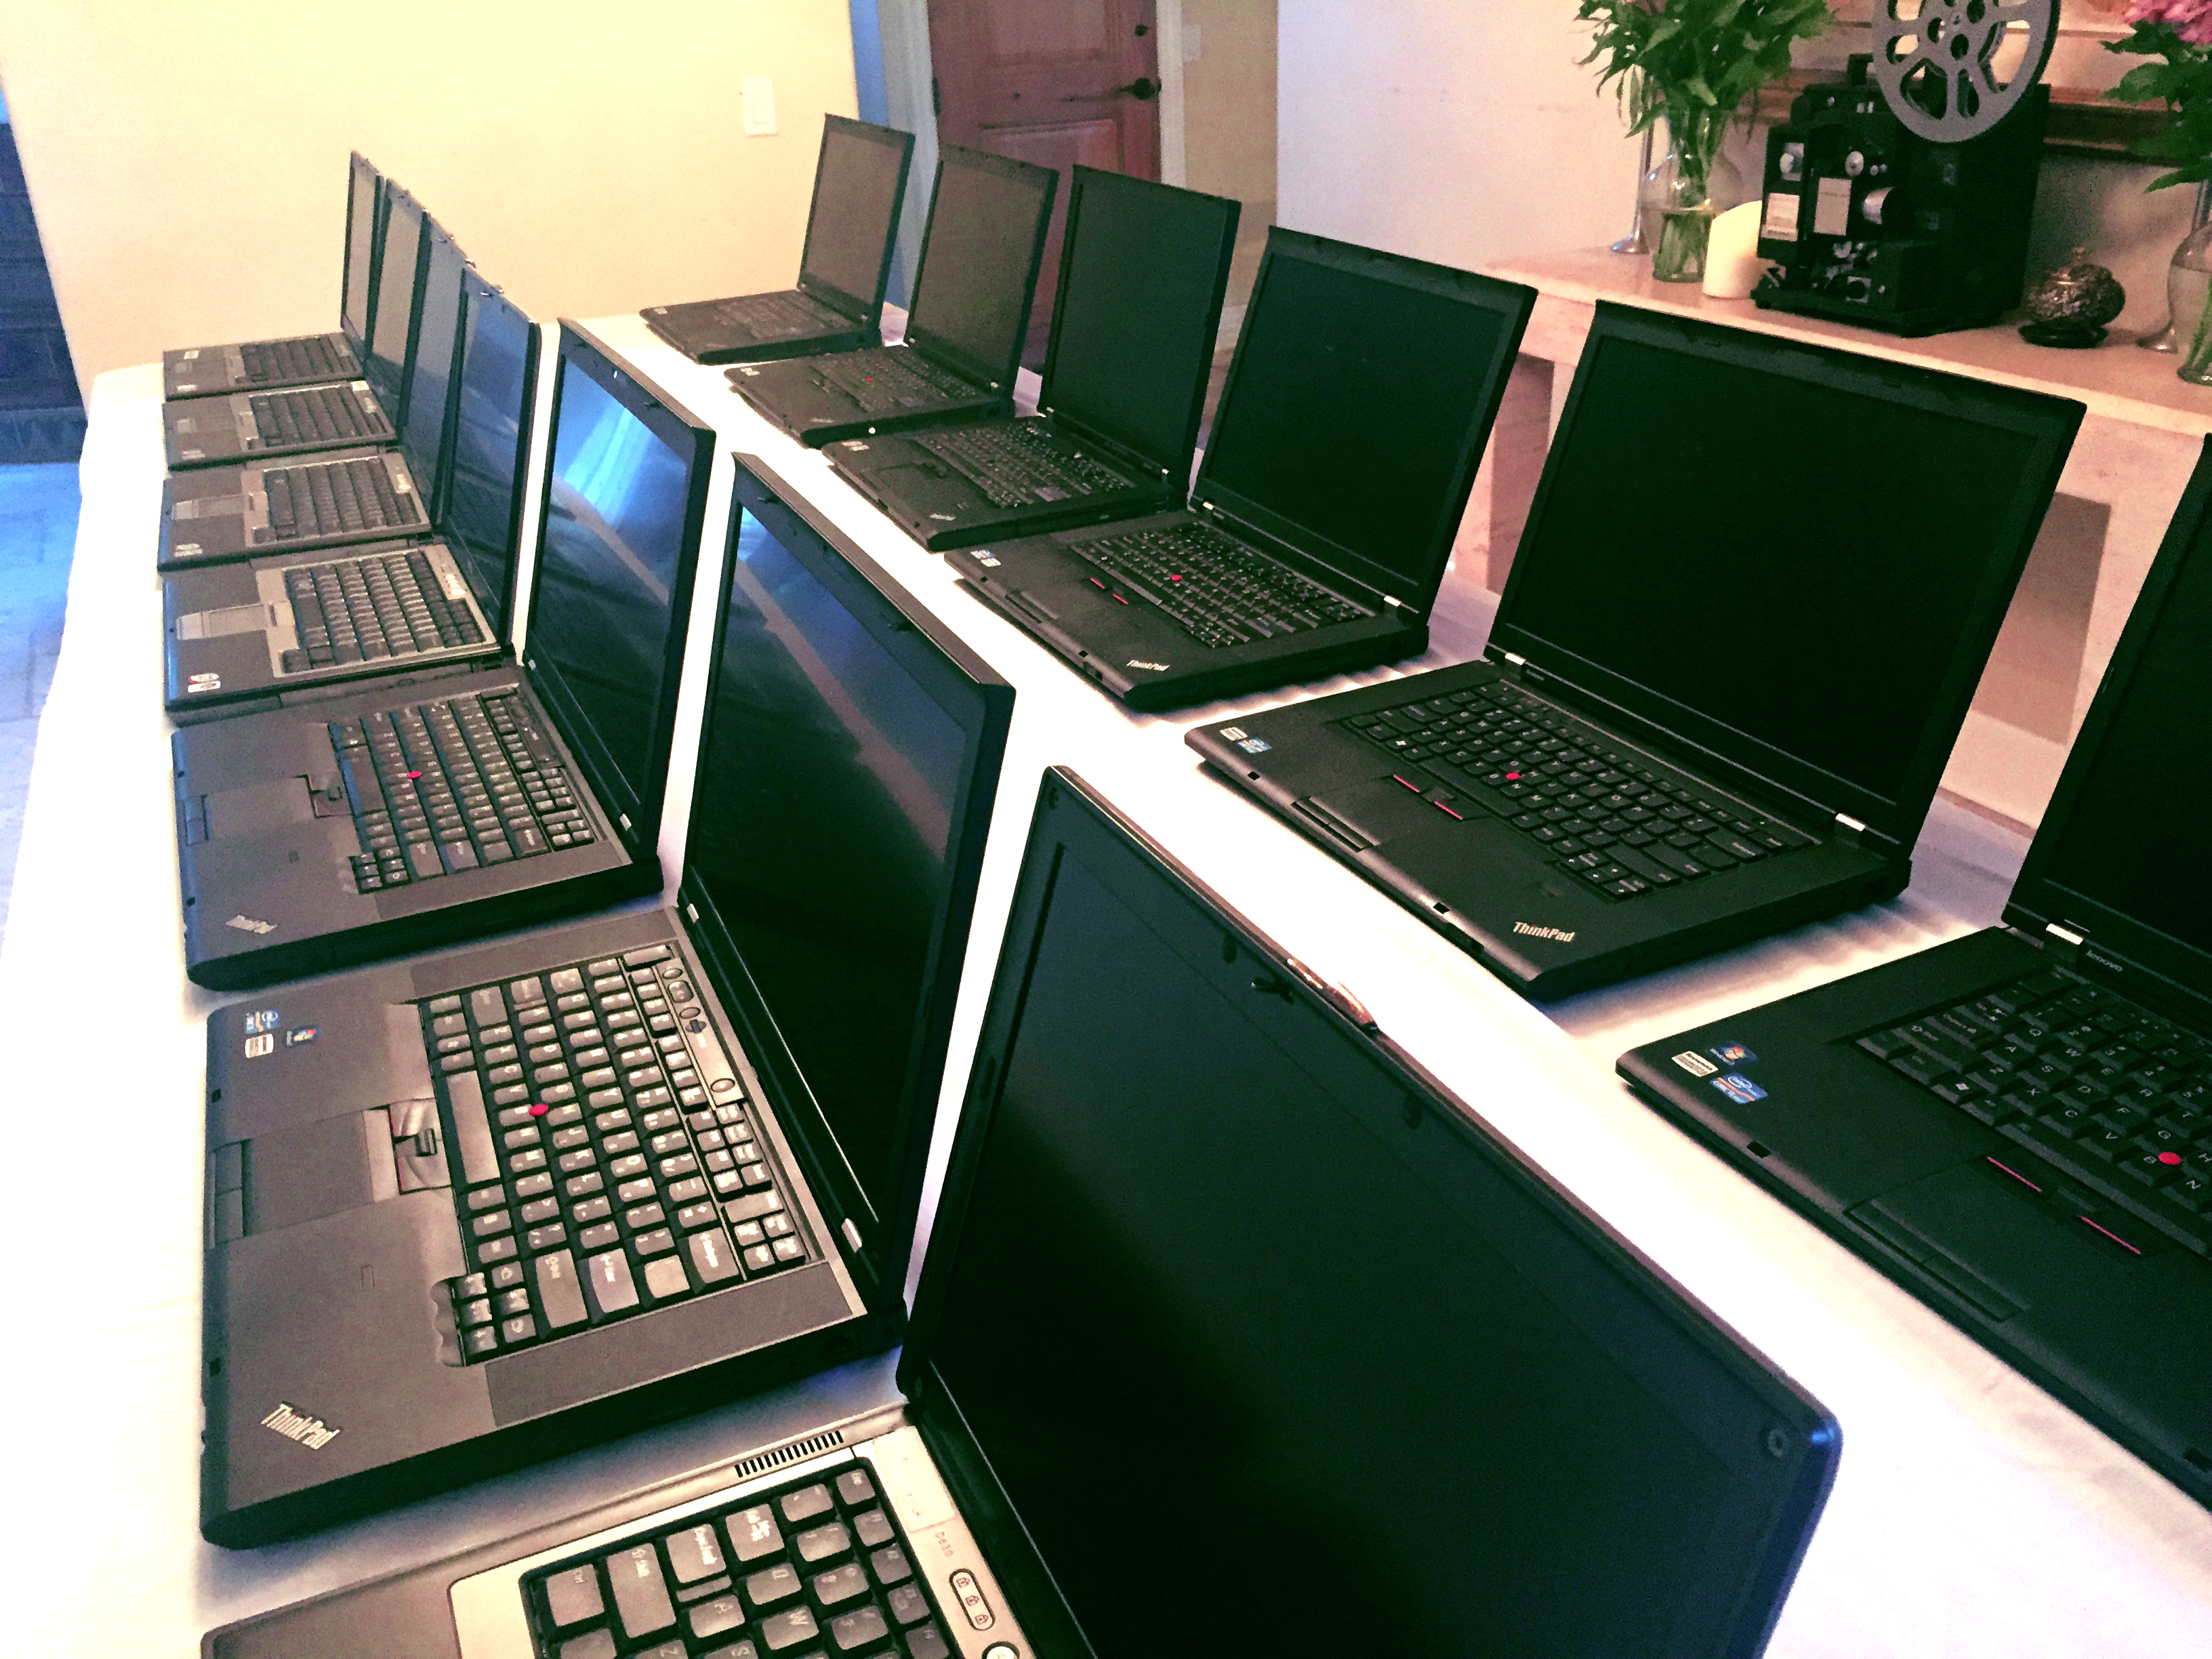 Reboot for Youth donates computers